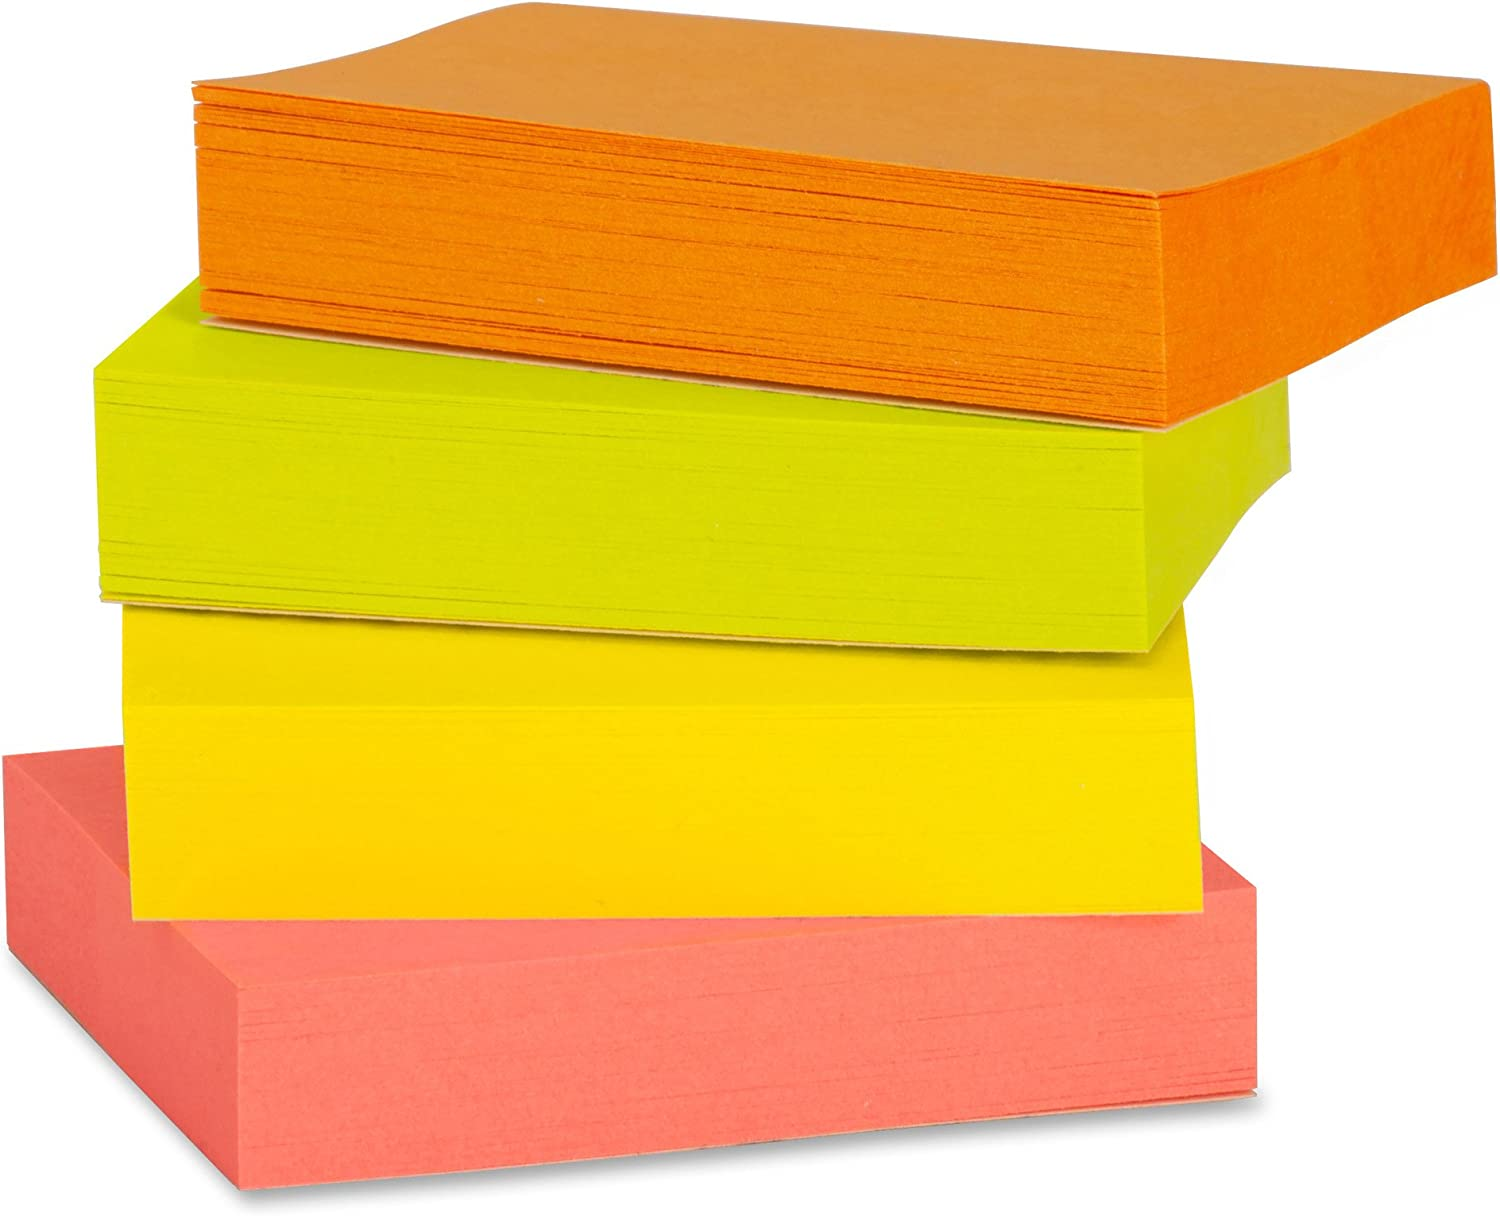 Pack of 12 Pads of 100 Extreme Business Source Premium Adhesive Notes 1.5 x 2 Inches